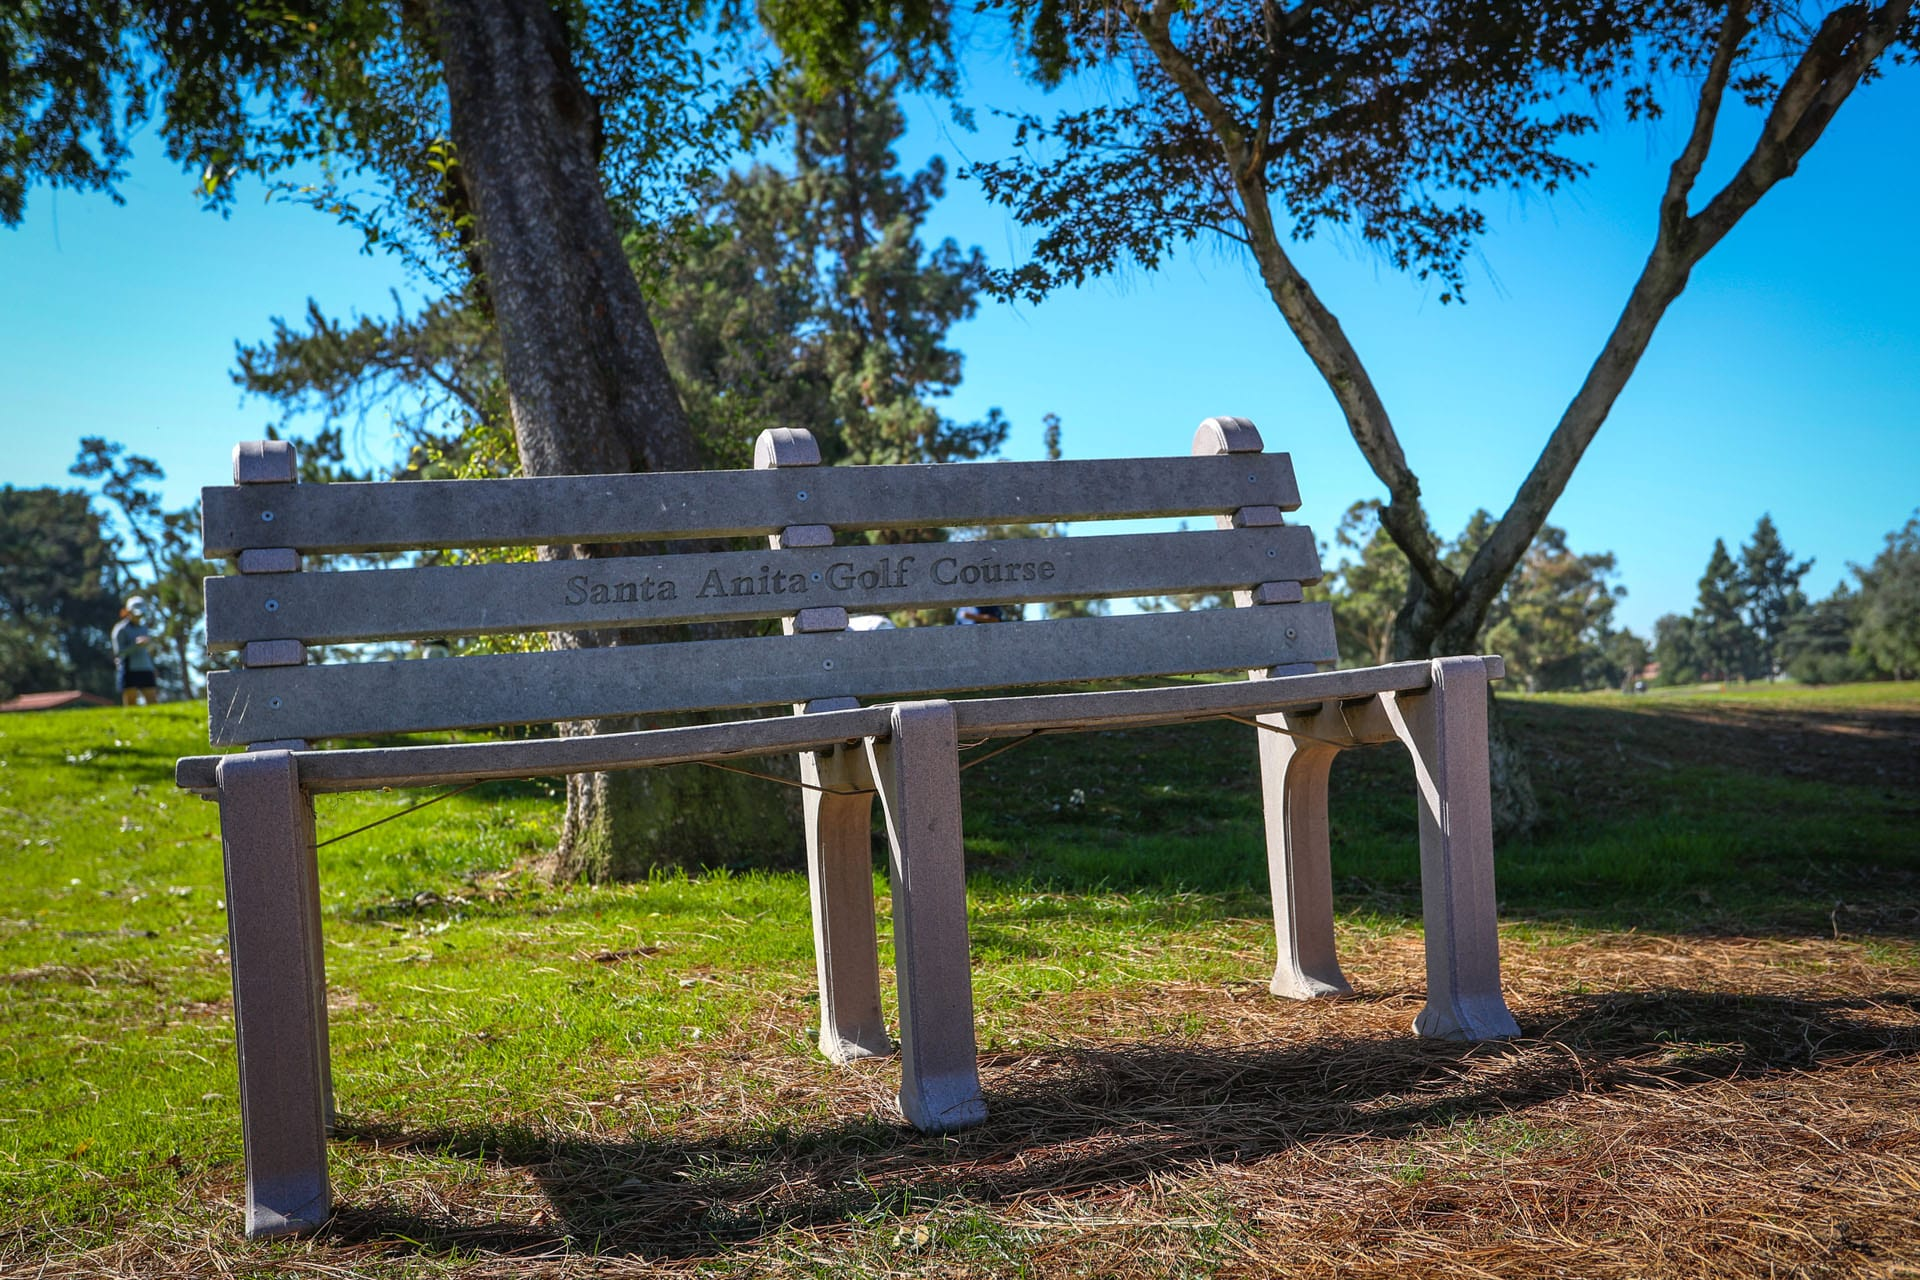 Bench in front of tree